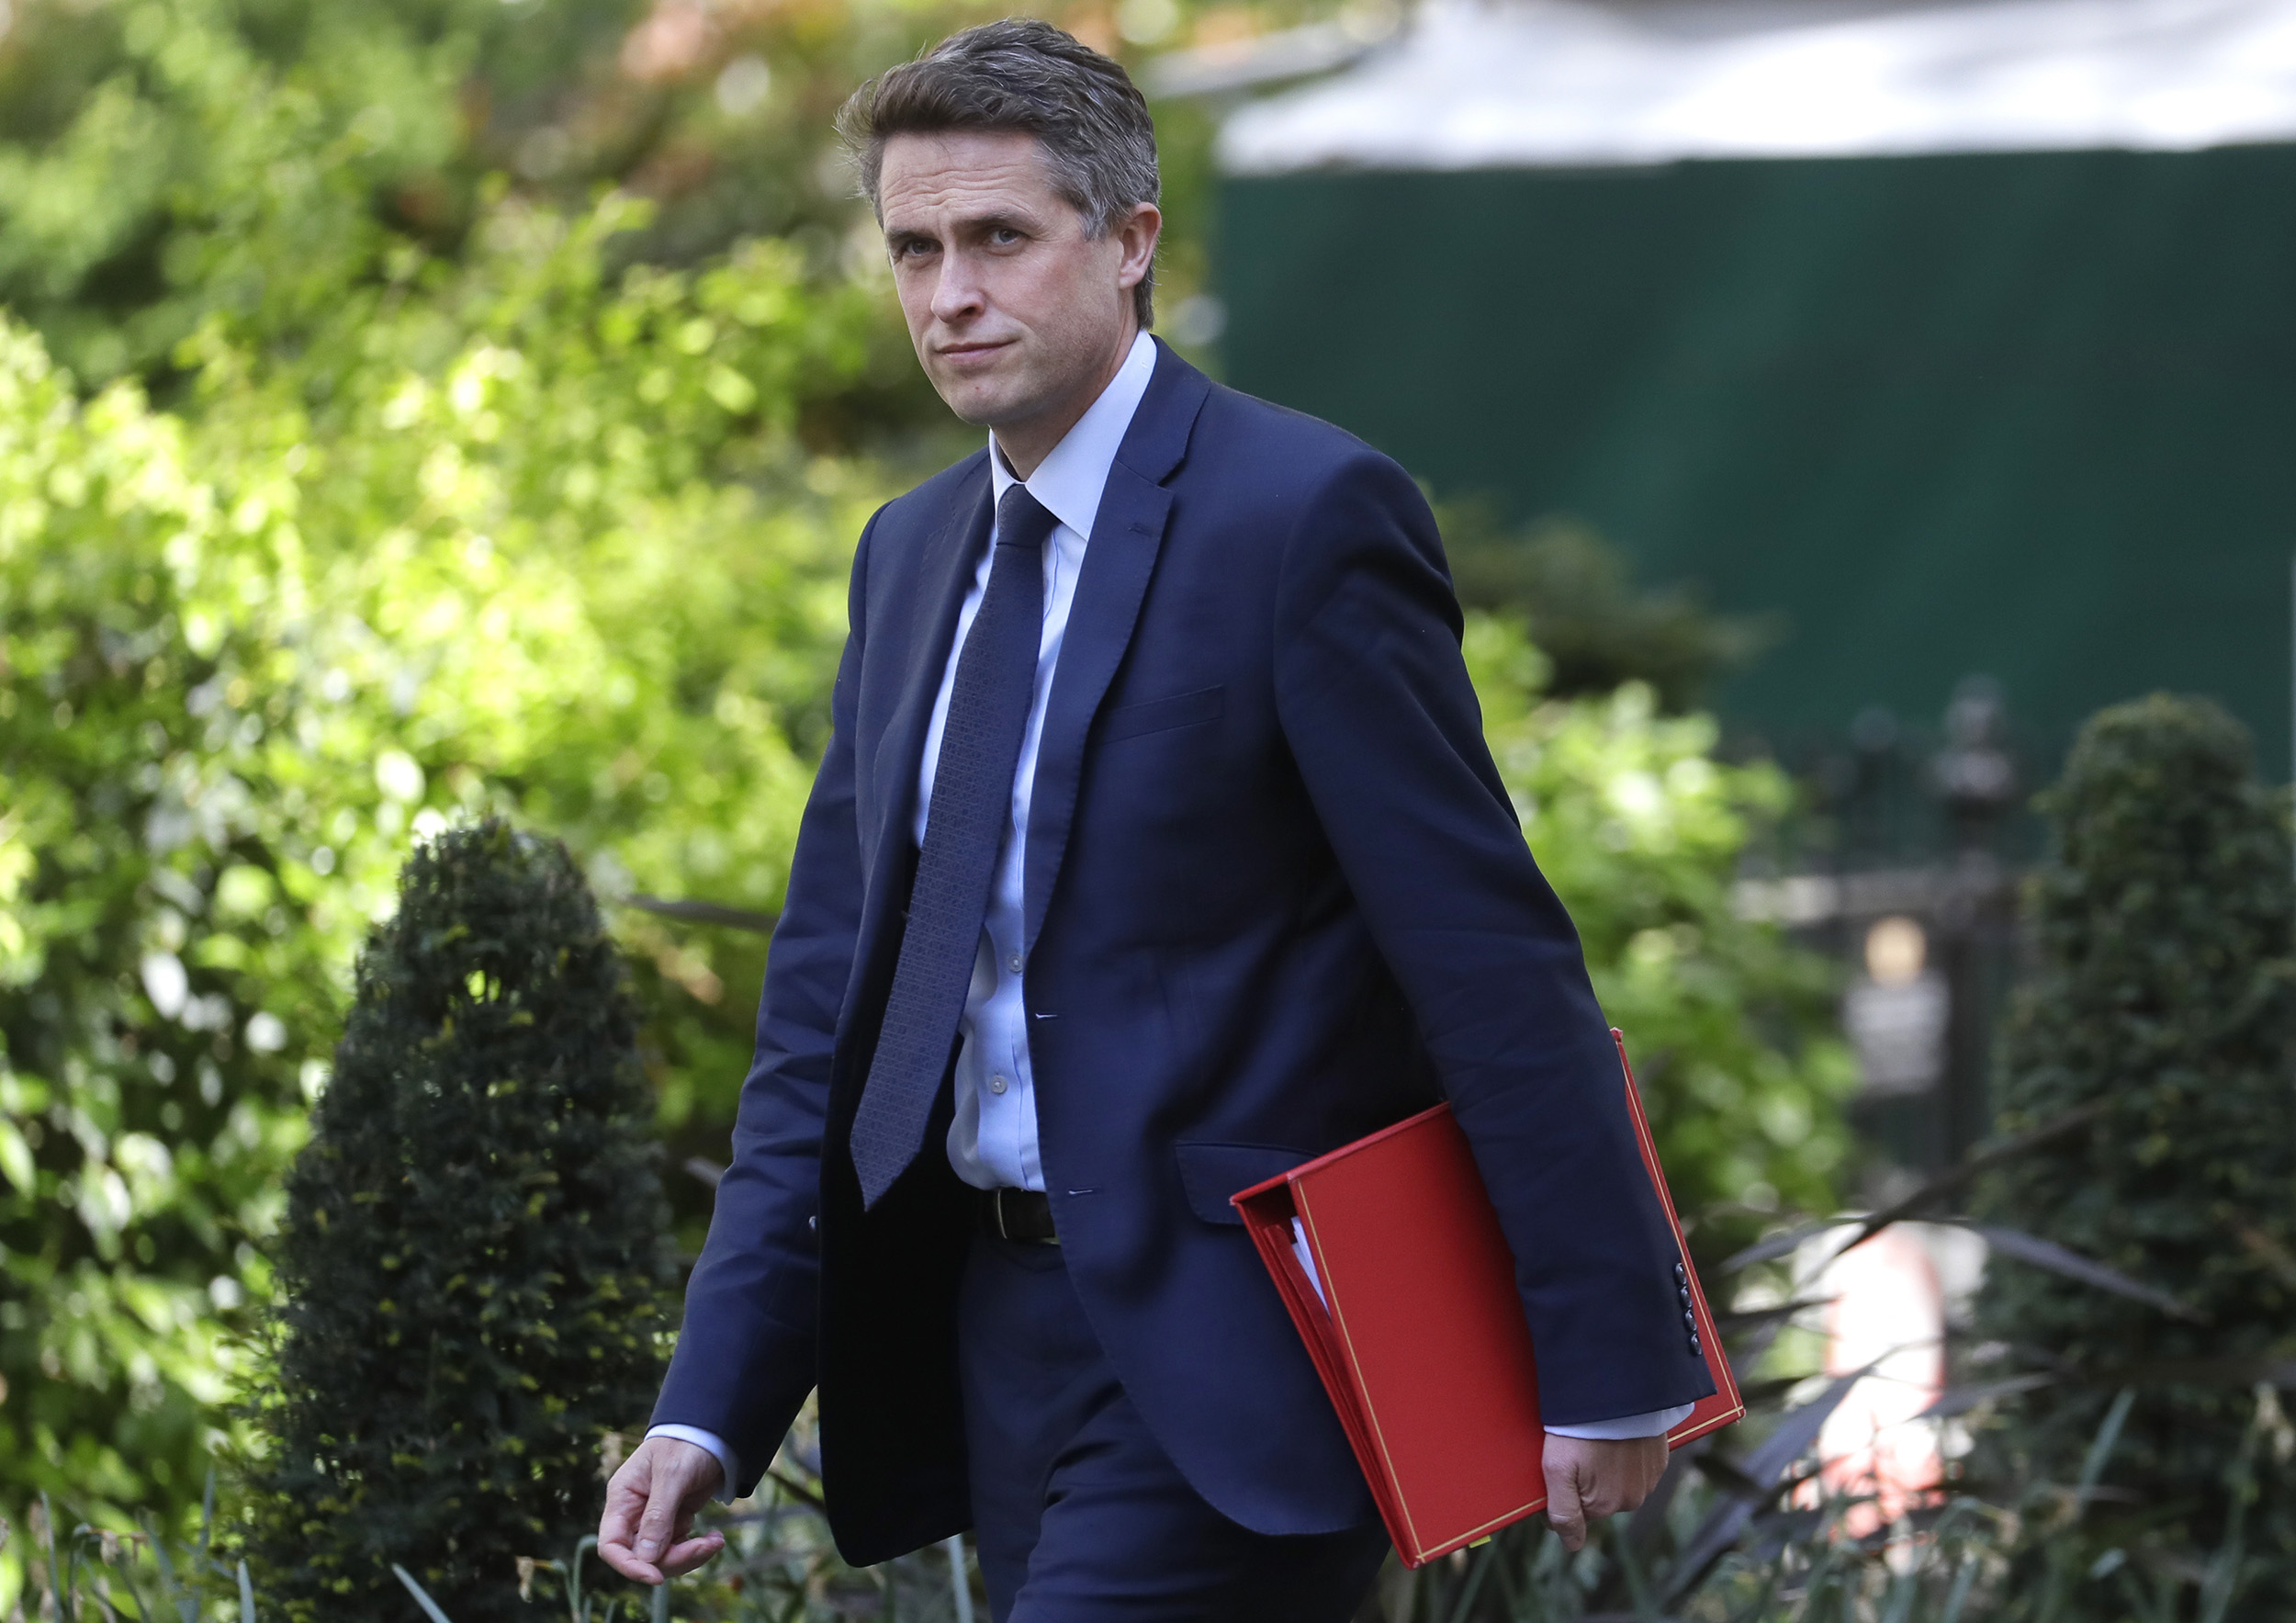 Britain's Education Secretary Gavin Williamson arrives in Downing Street in London on Friday, May 1.